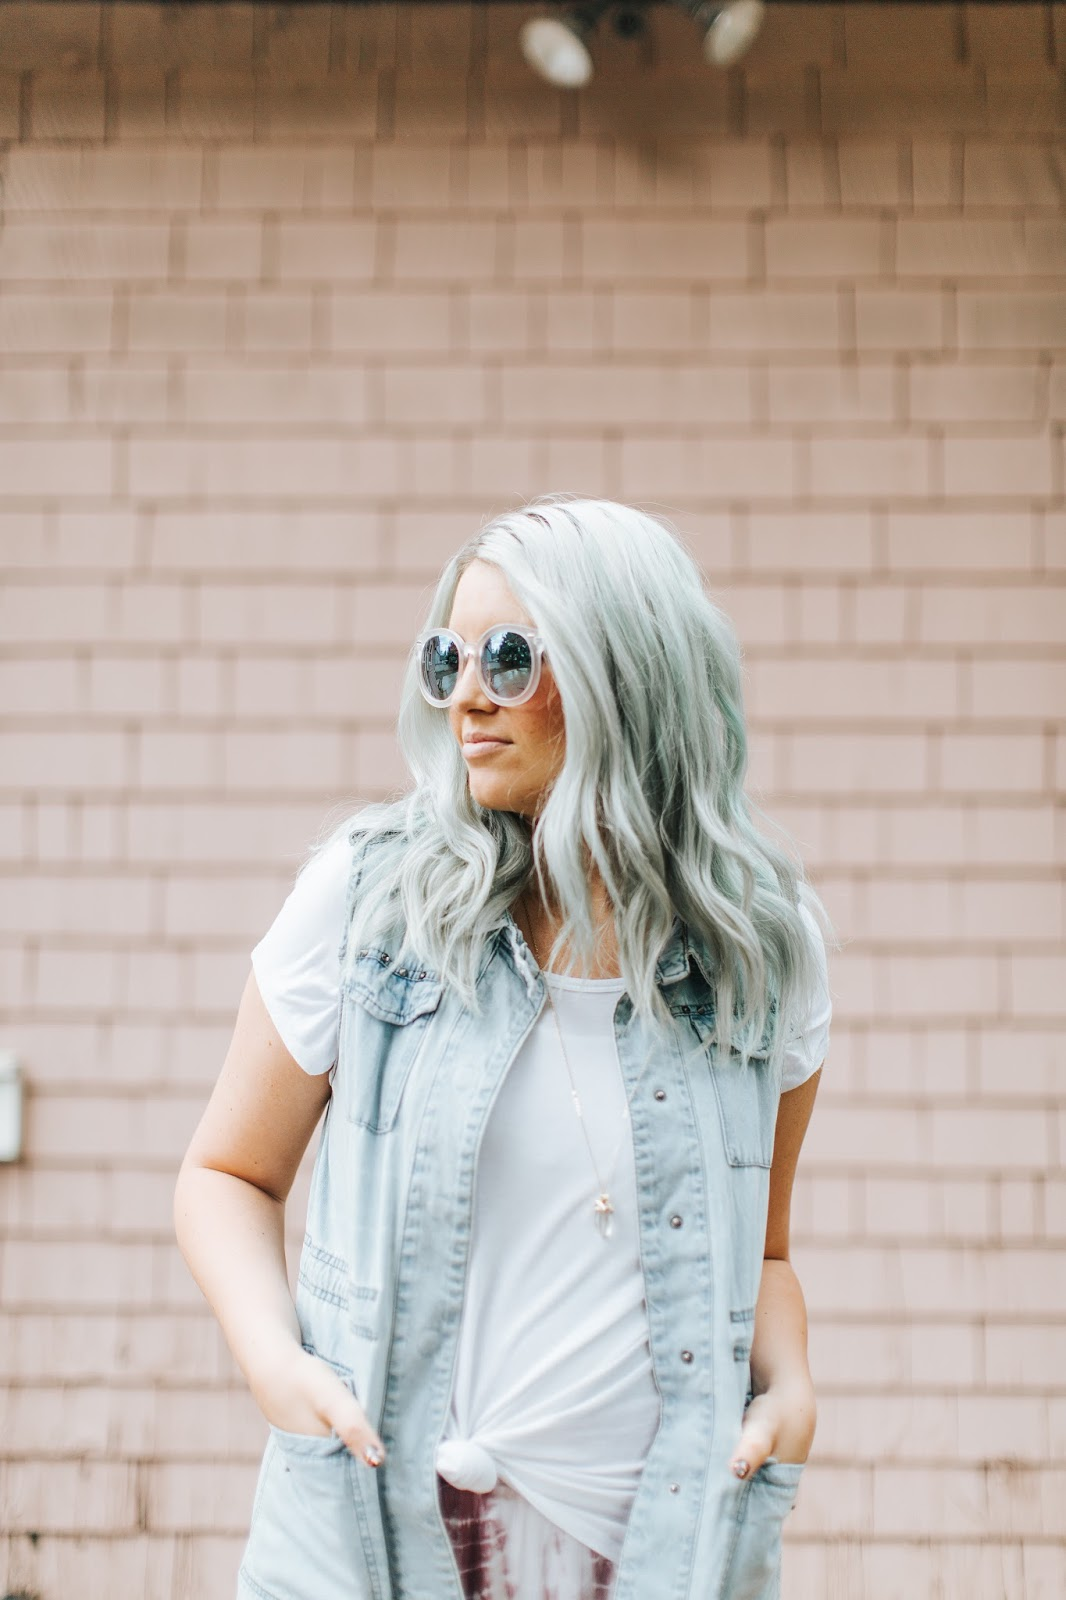 Cute Sunnies, Denim Vest, White Tee, Mint Hair